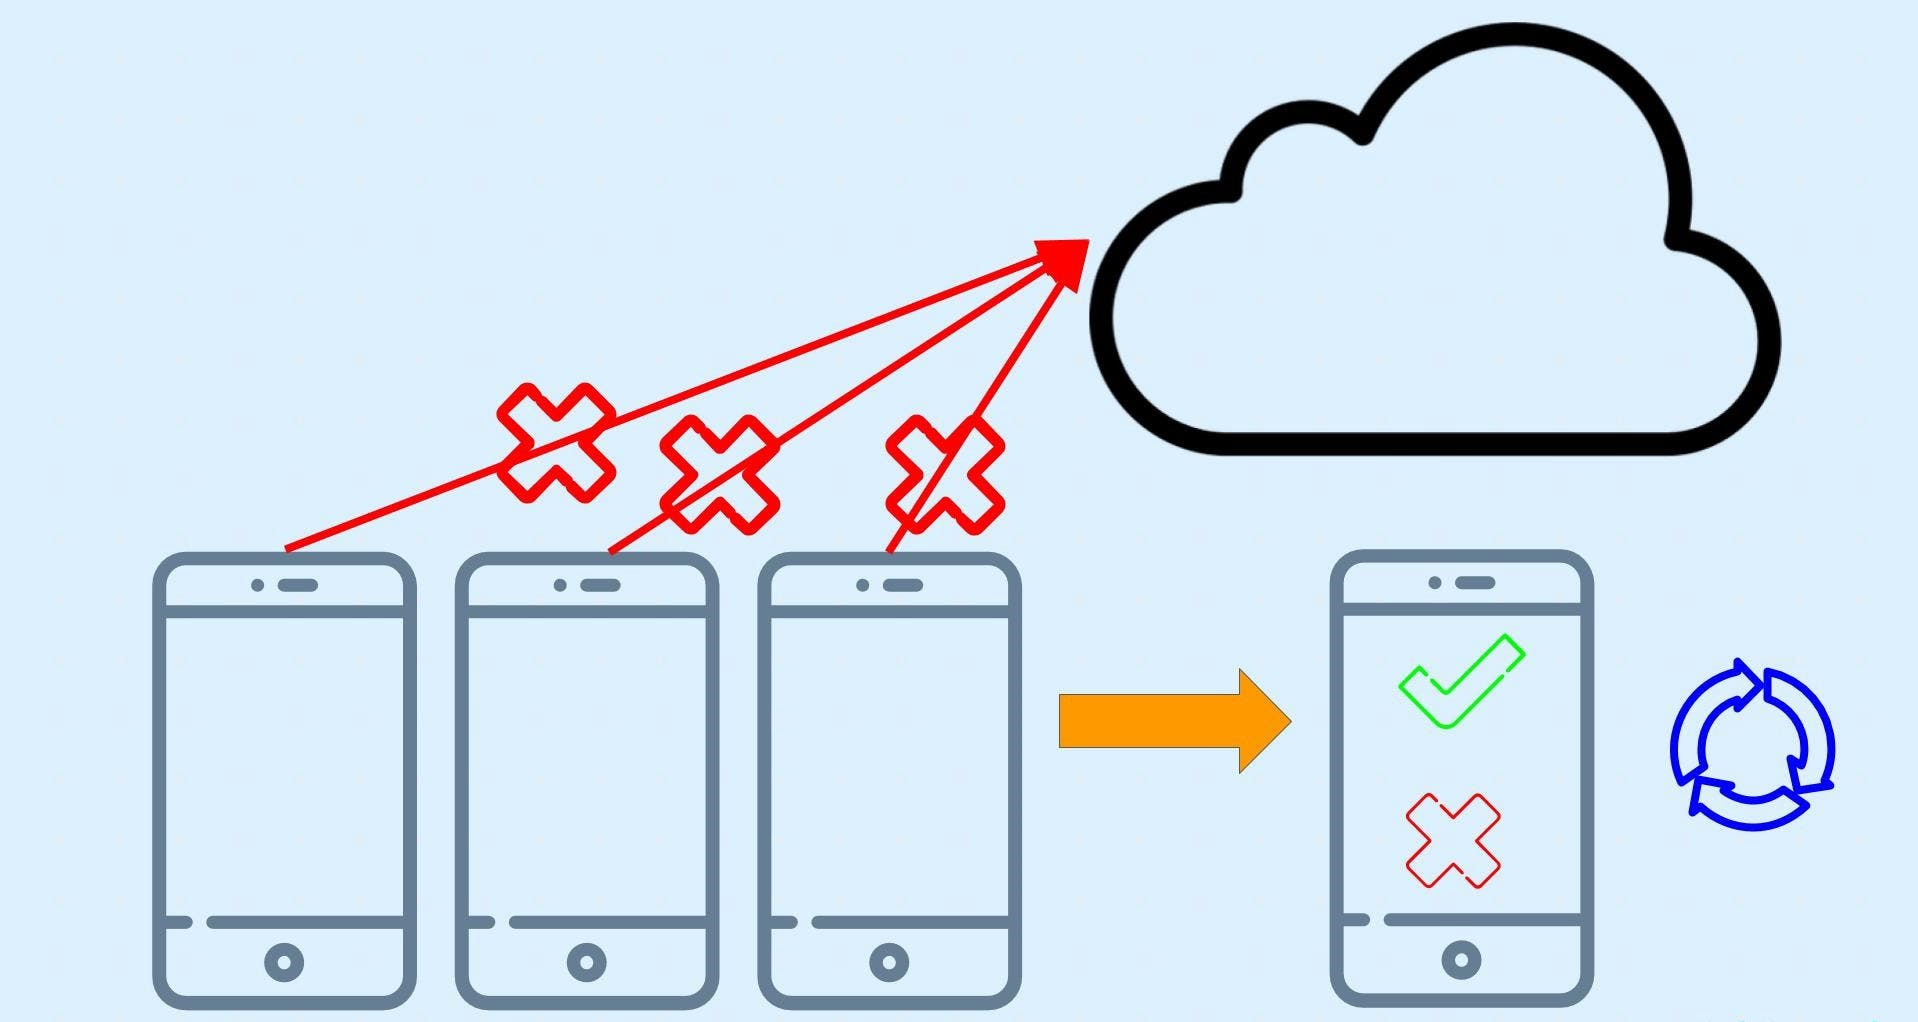 The idea behind on-device ML